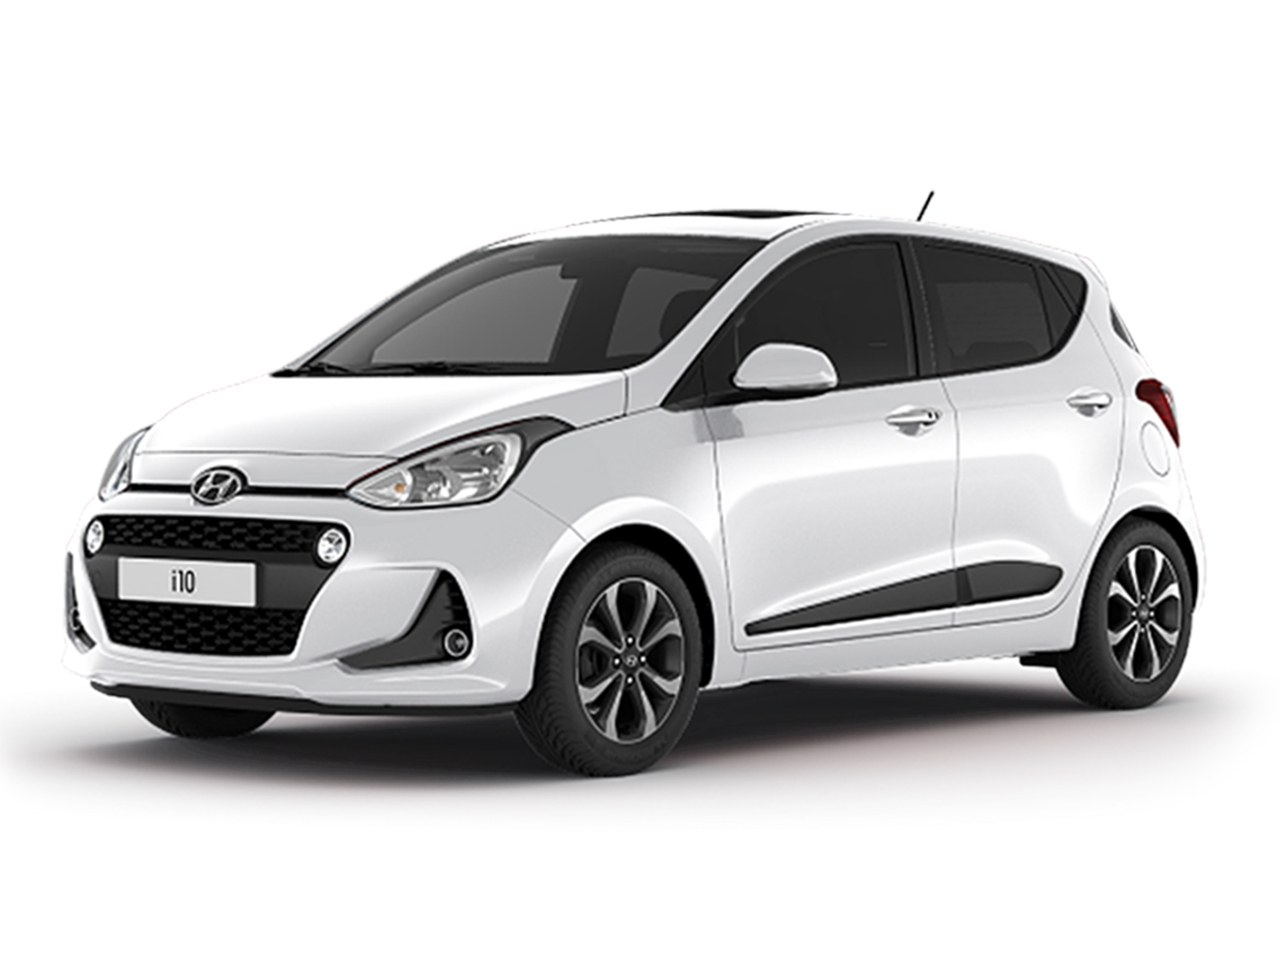 Rent A Car In Dubai >> Rent a car Hyundai i10 - car rental Hyundai i10